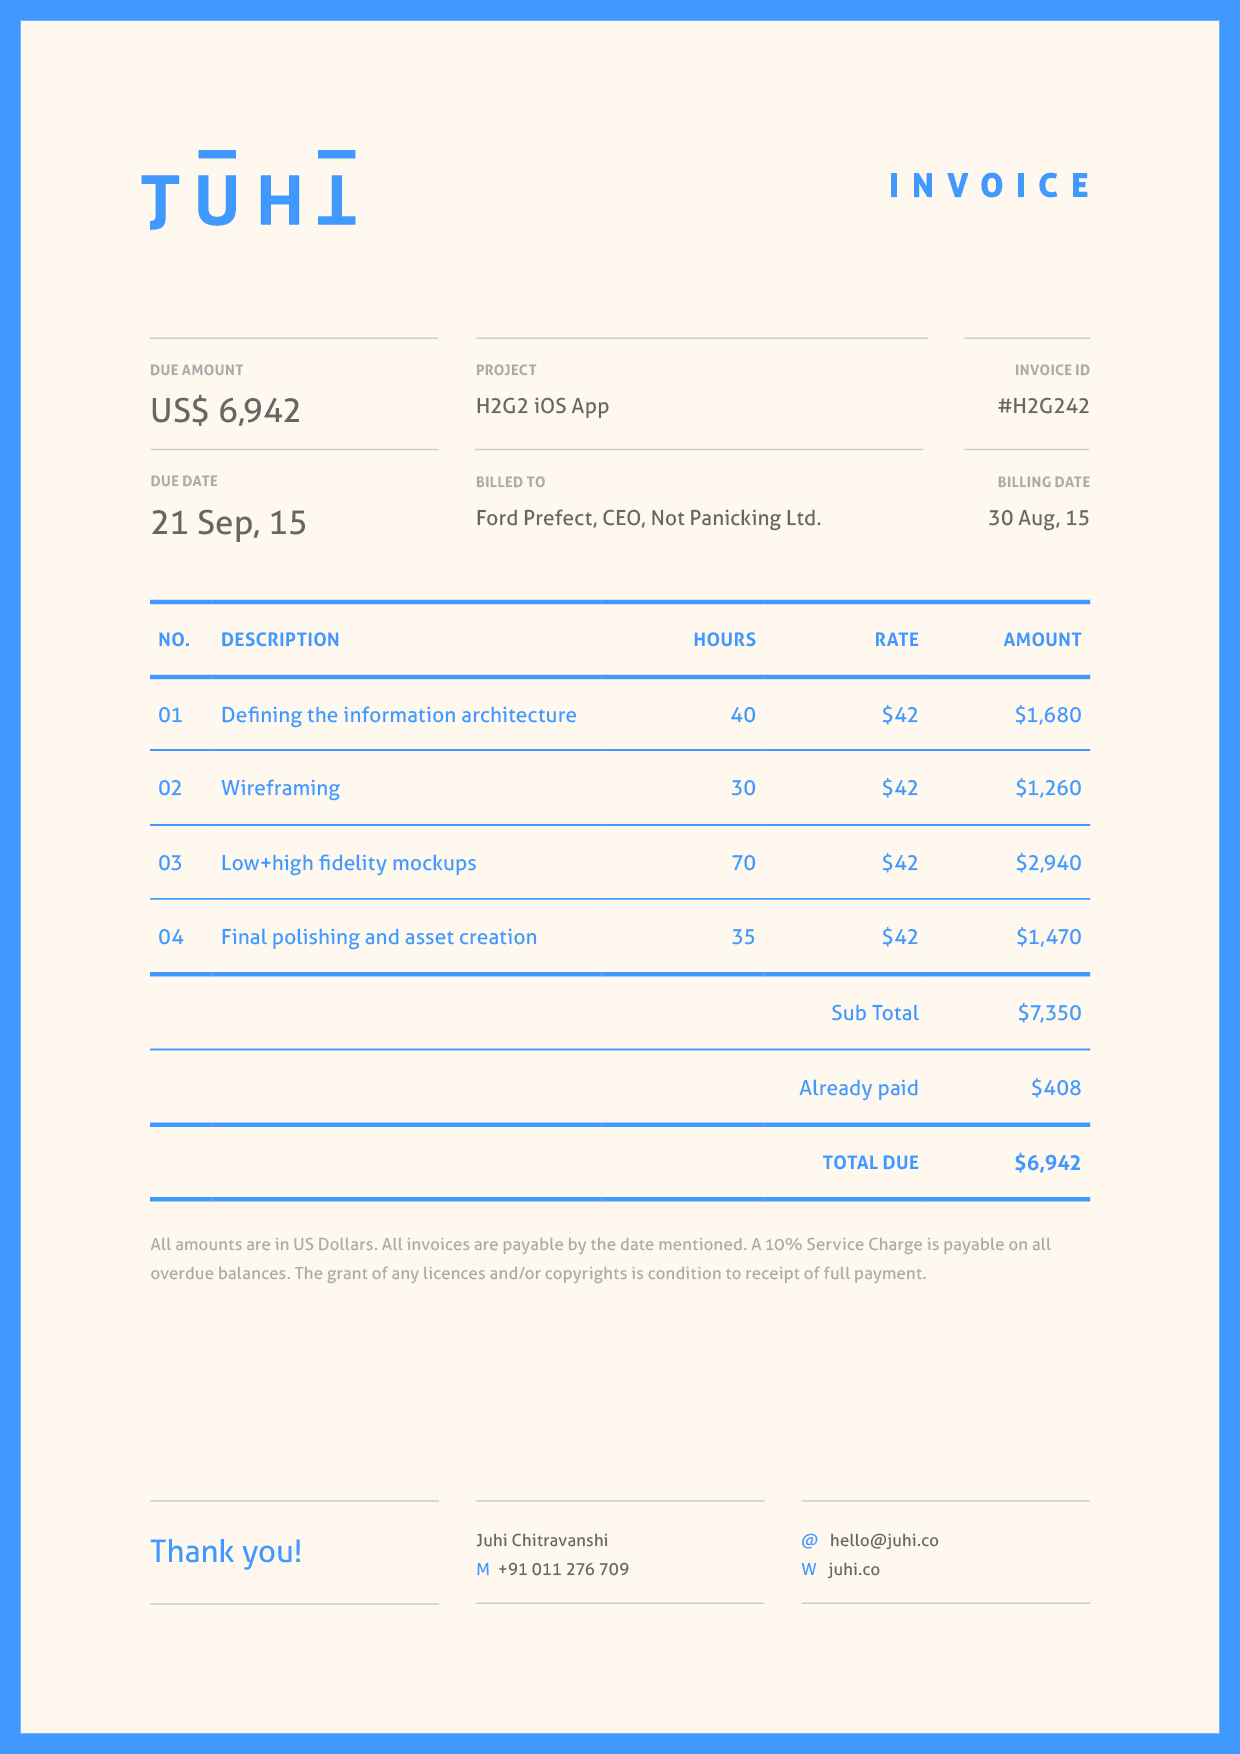 Usdgus  Winsome Dont Hold Back On Your Invoice  Inspiring Designs  With Gorgeous Invoice By Juhi Chitravanshi Follow With Divine Sample Design Invoice Also Best Invoice Software Mac In Addition Make A Invoice Online And Invoice For Consulting As Well As Customer Invoice Template Excel Additionally Free Invoice Template Downloads From Inspirationfeedcom With Usdgus  Gorgeous Dont Hold Back On Your Invoice  Inspiring Designs  With Divine Invoice By Juhi Chitravanshi Follow And Winsome Sample Design Invoice Also Best Invoice Software Mac In Addition Make A Invoice Online From Inspirationfeedcom